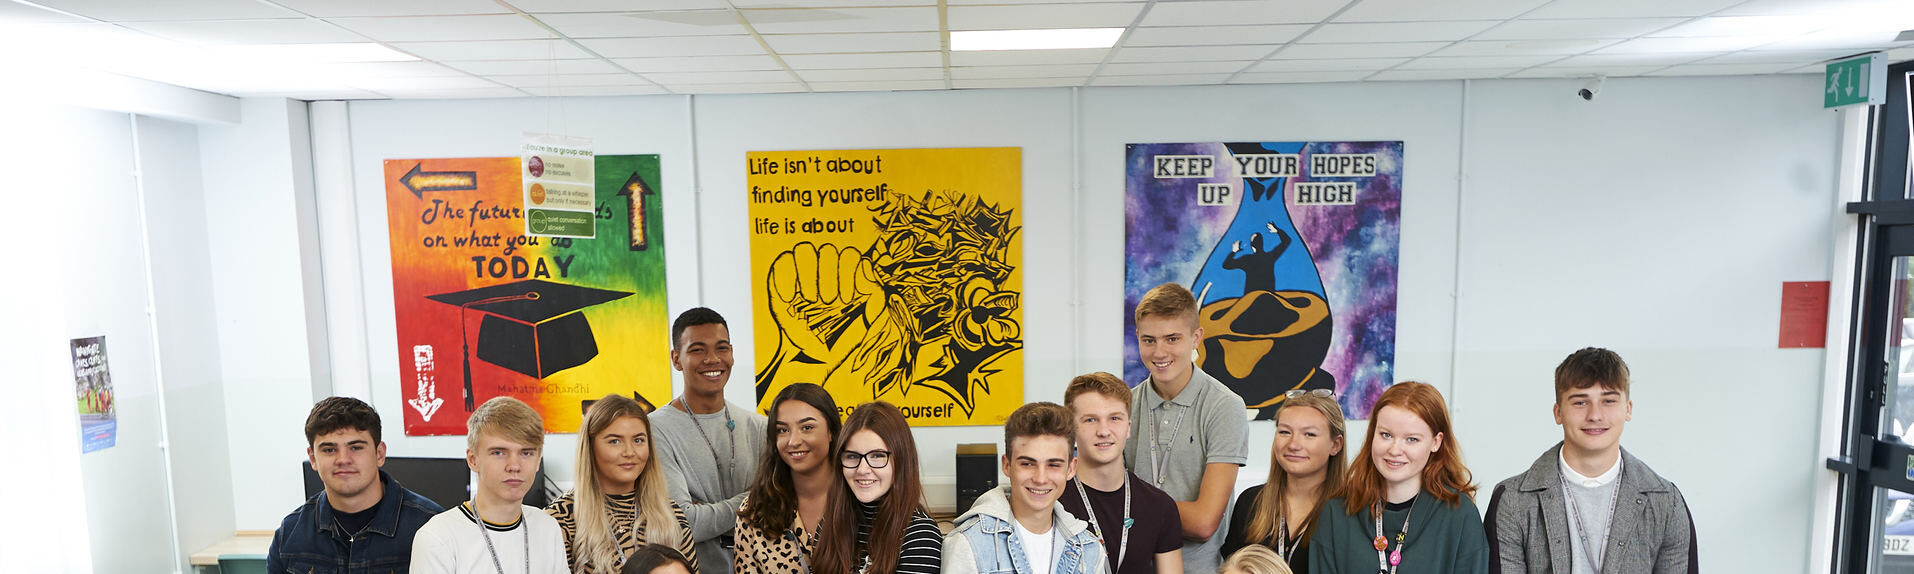 The Sixth Form Senior Council, assembled together in the common room